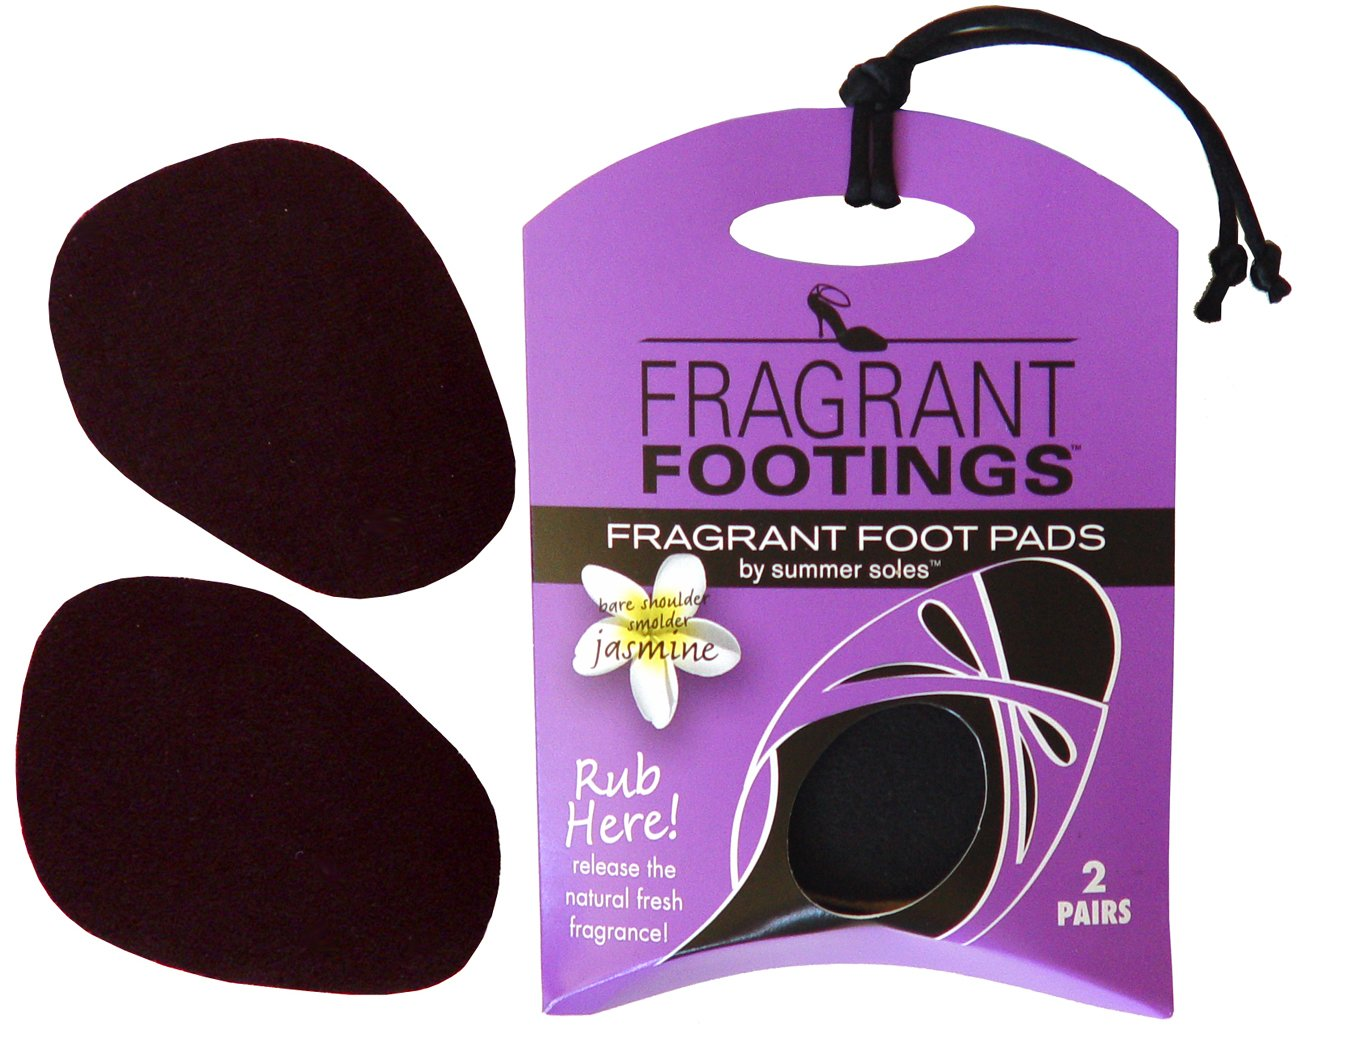 Summer Soles Fragrant Footings Ball of Foot Women's Insole for Sandals, Pumps, Flats to Reduce Moisture